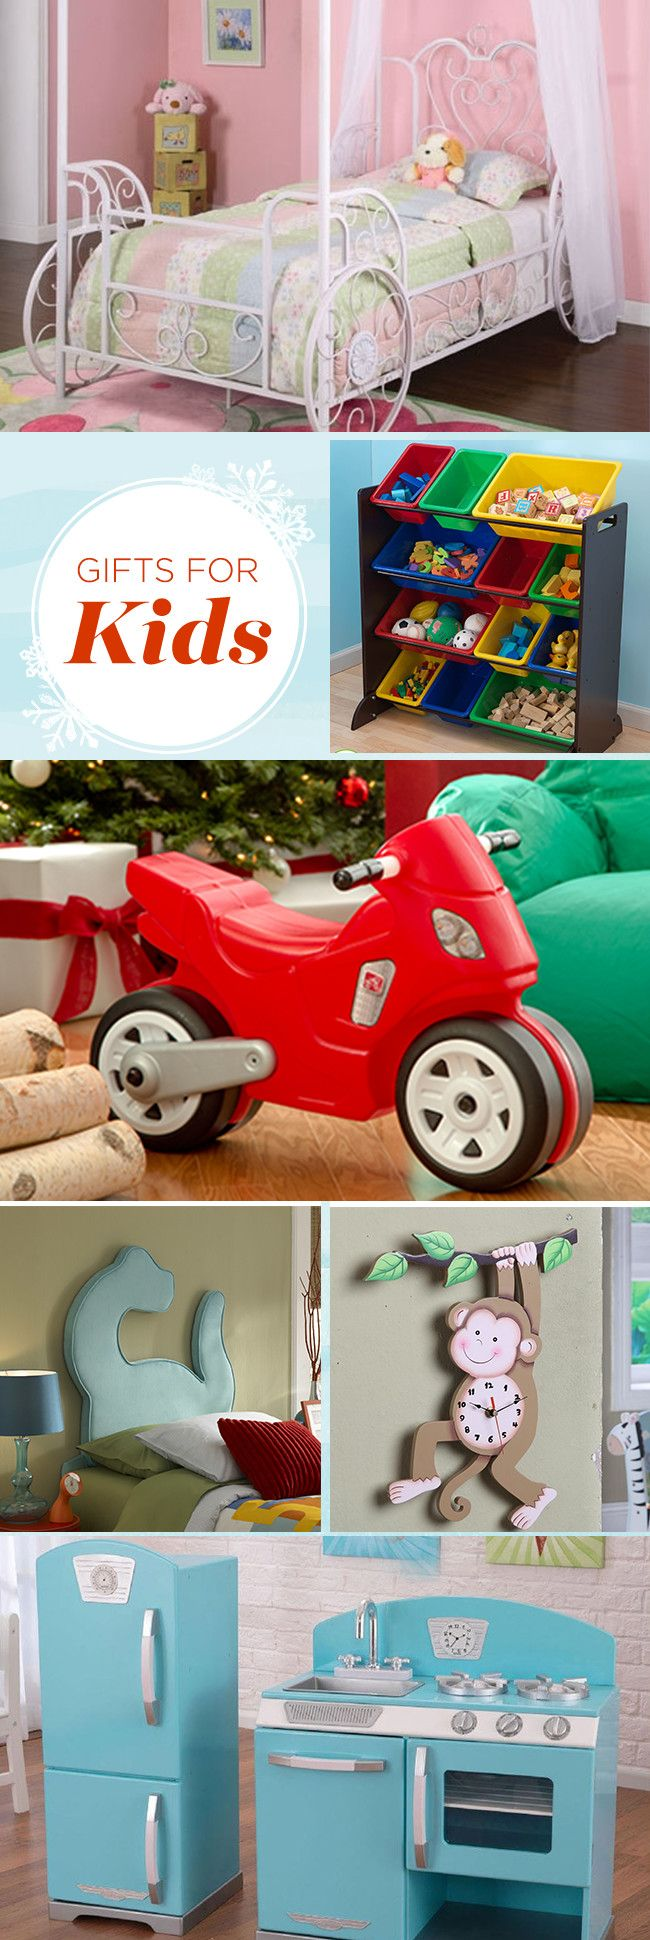 Featuring battery-powered cars, teepees, and snow cone makers, these picks get the stamp of approval from kids. You'll save big, while they laugh and play the days away! Sign up today and unwrap saving on gifts that spread cheer! Save up to 70% off our holiday wishlist event and enjoy free shipping on all orders over $49.